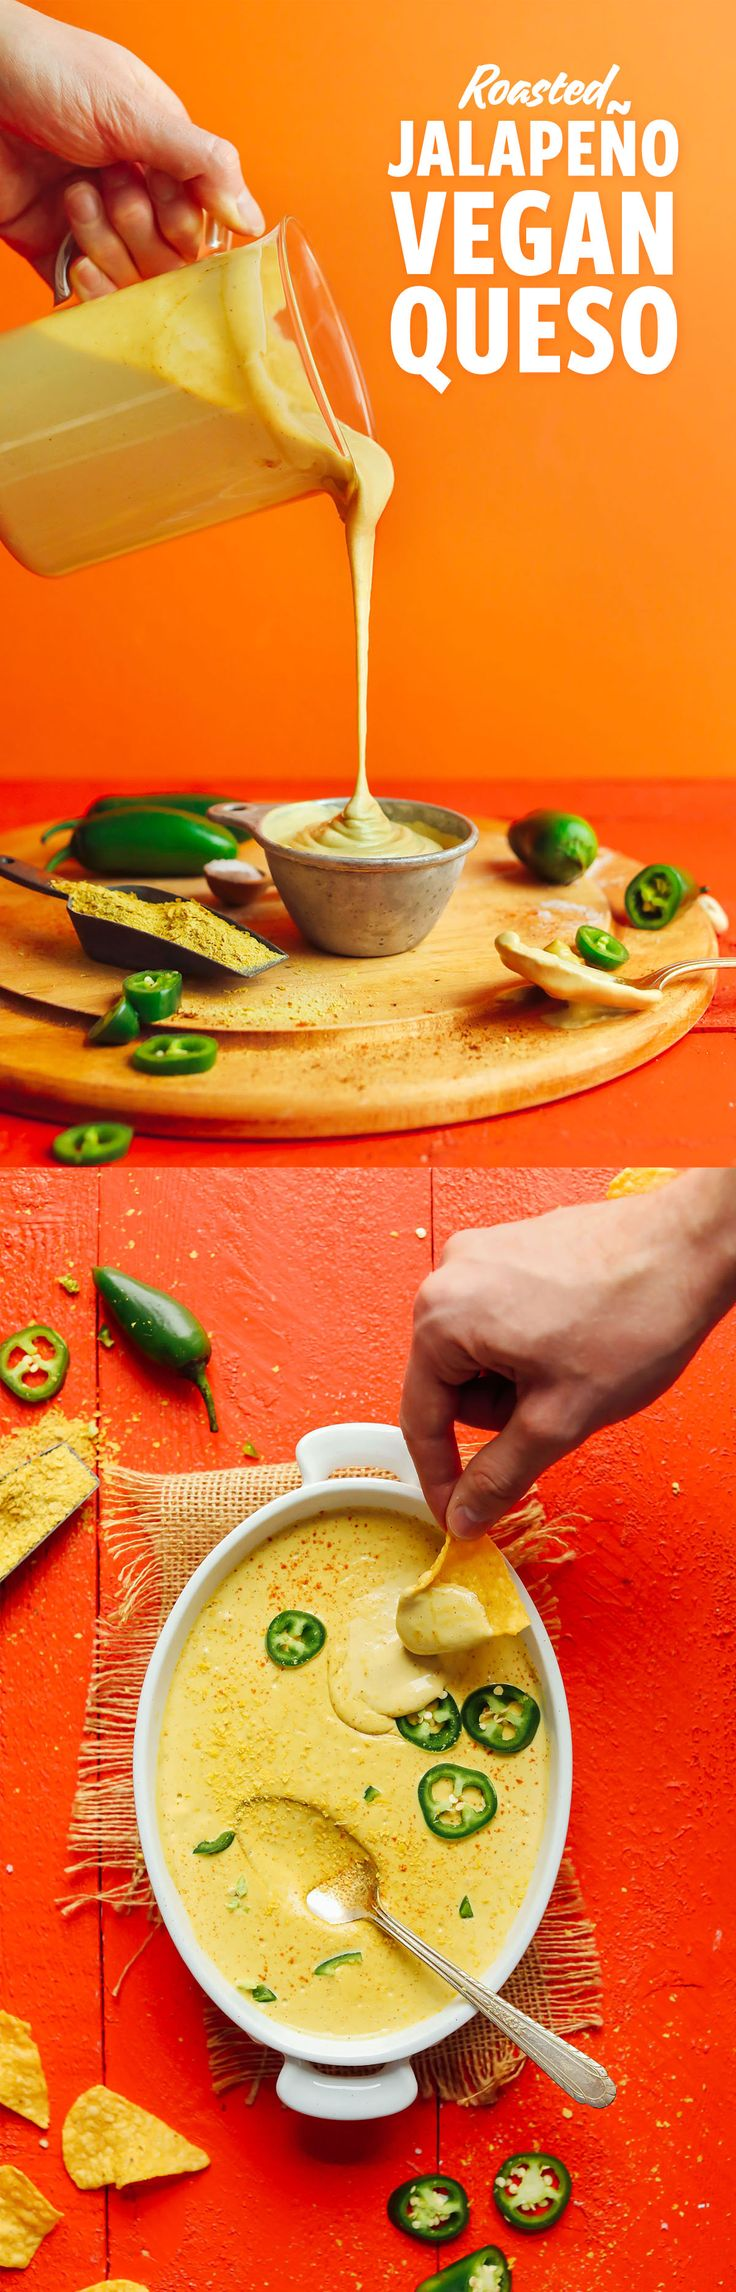 Creamy Roasted Jalapeno Vegan Queso. #vegan #glutenfree #soyfree